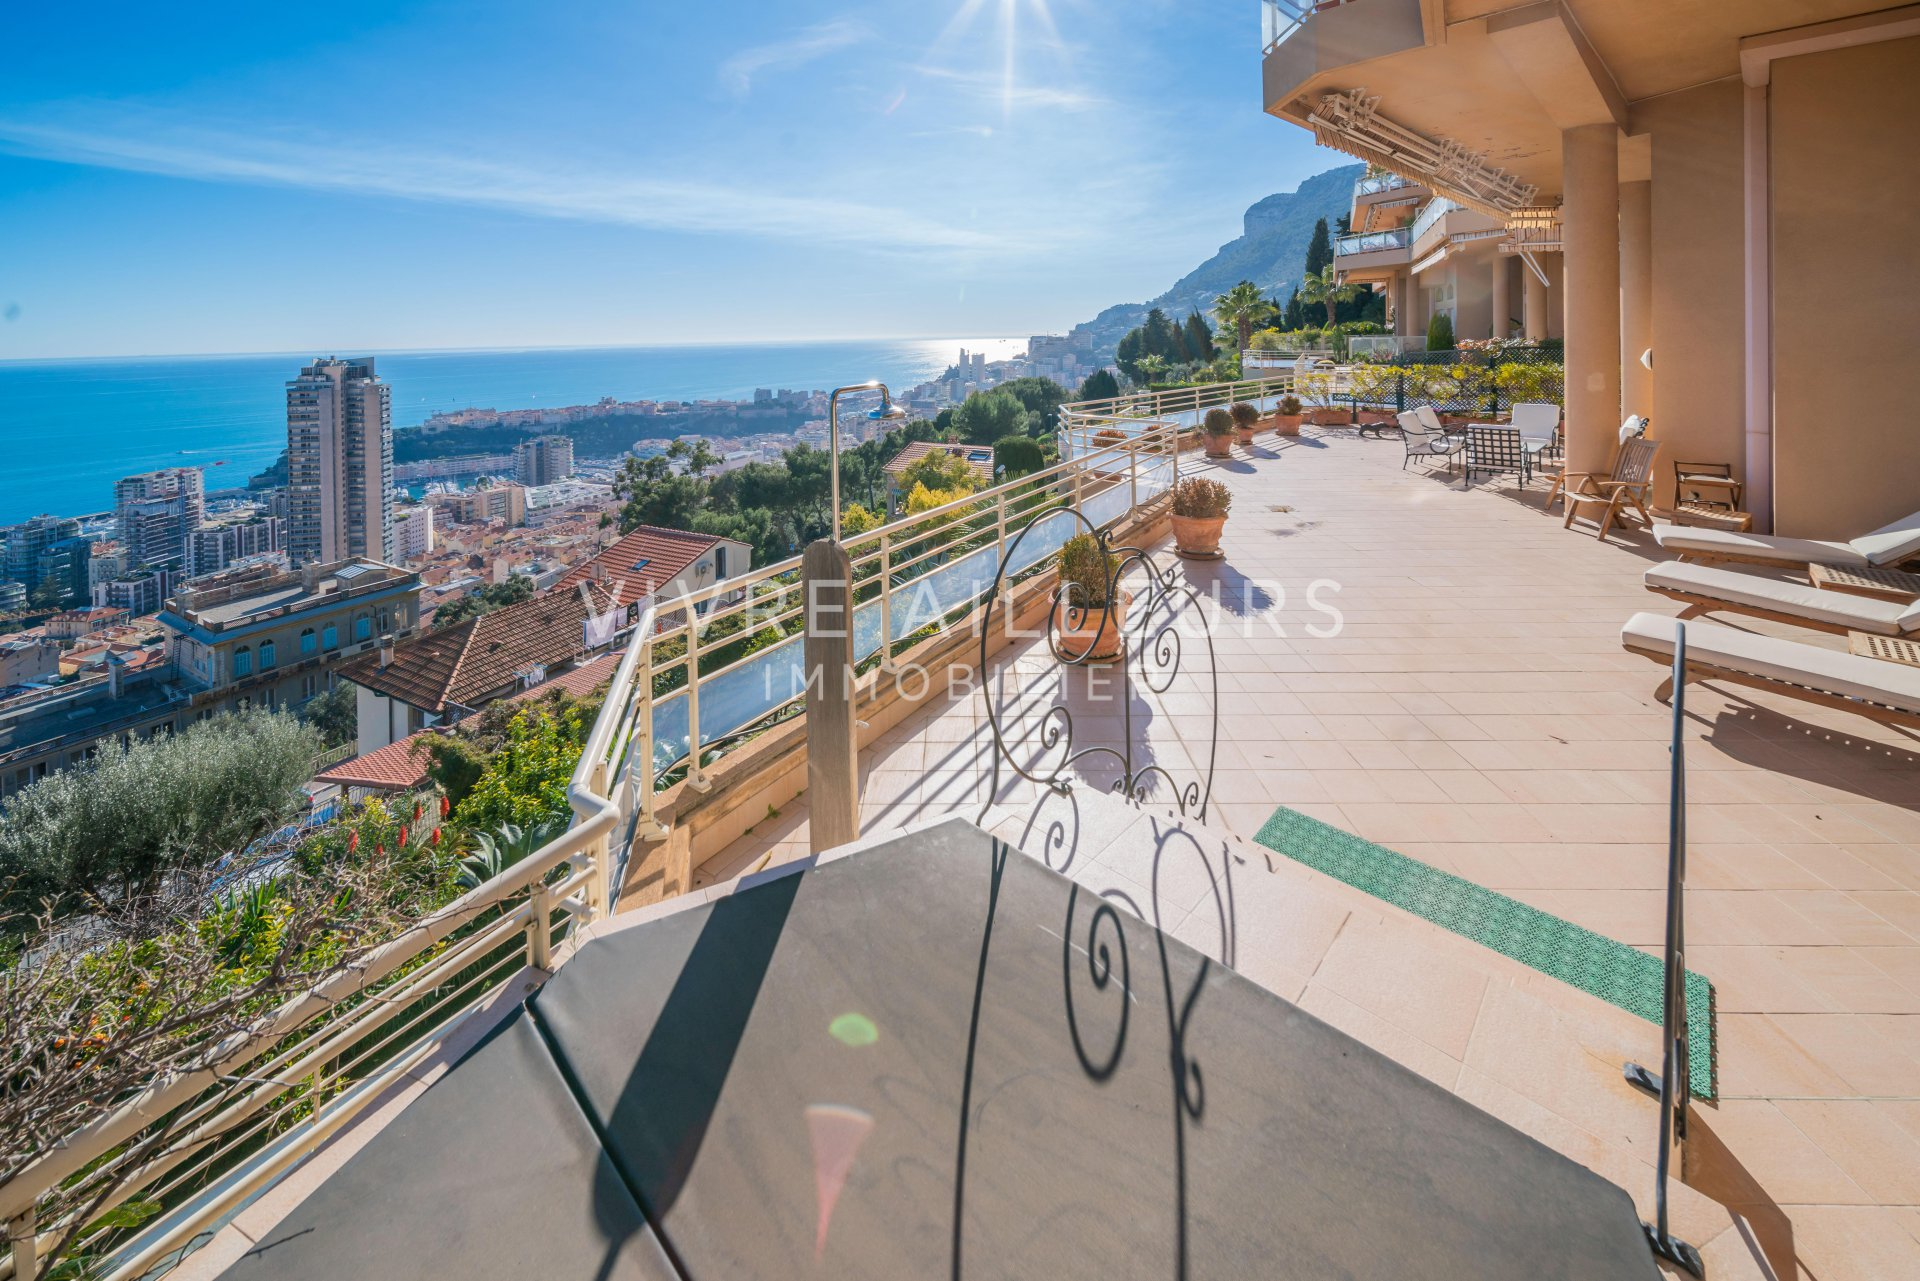 Apartment for sale Beausoleil 4 bedrooms 166sqm